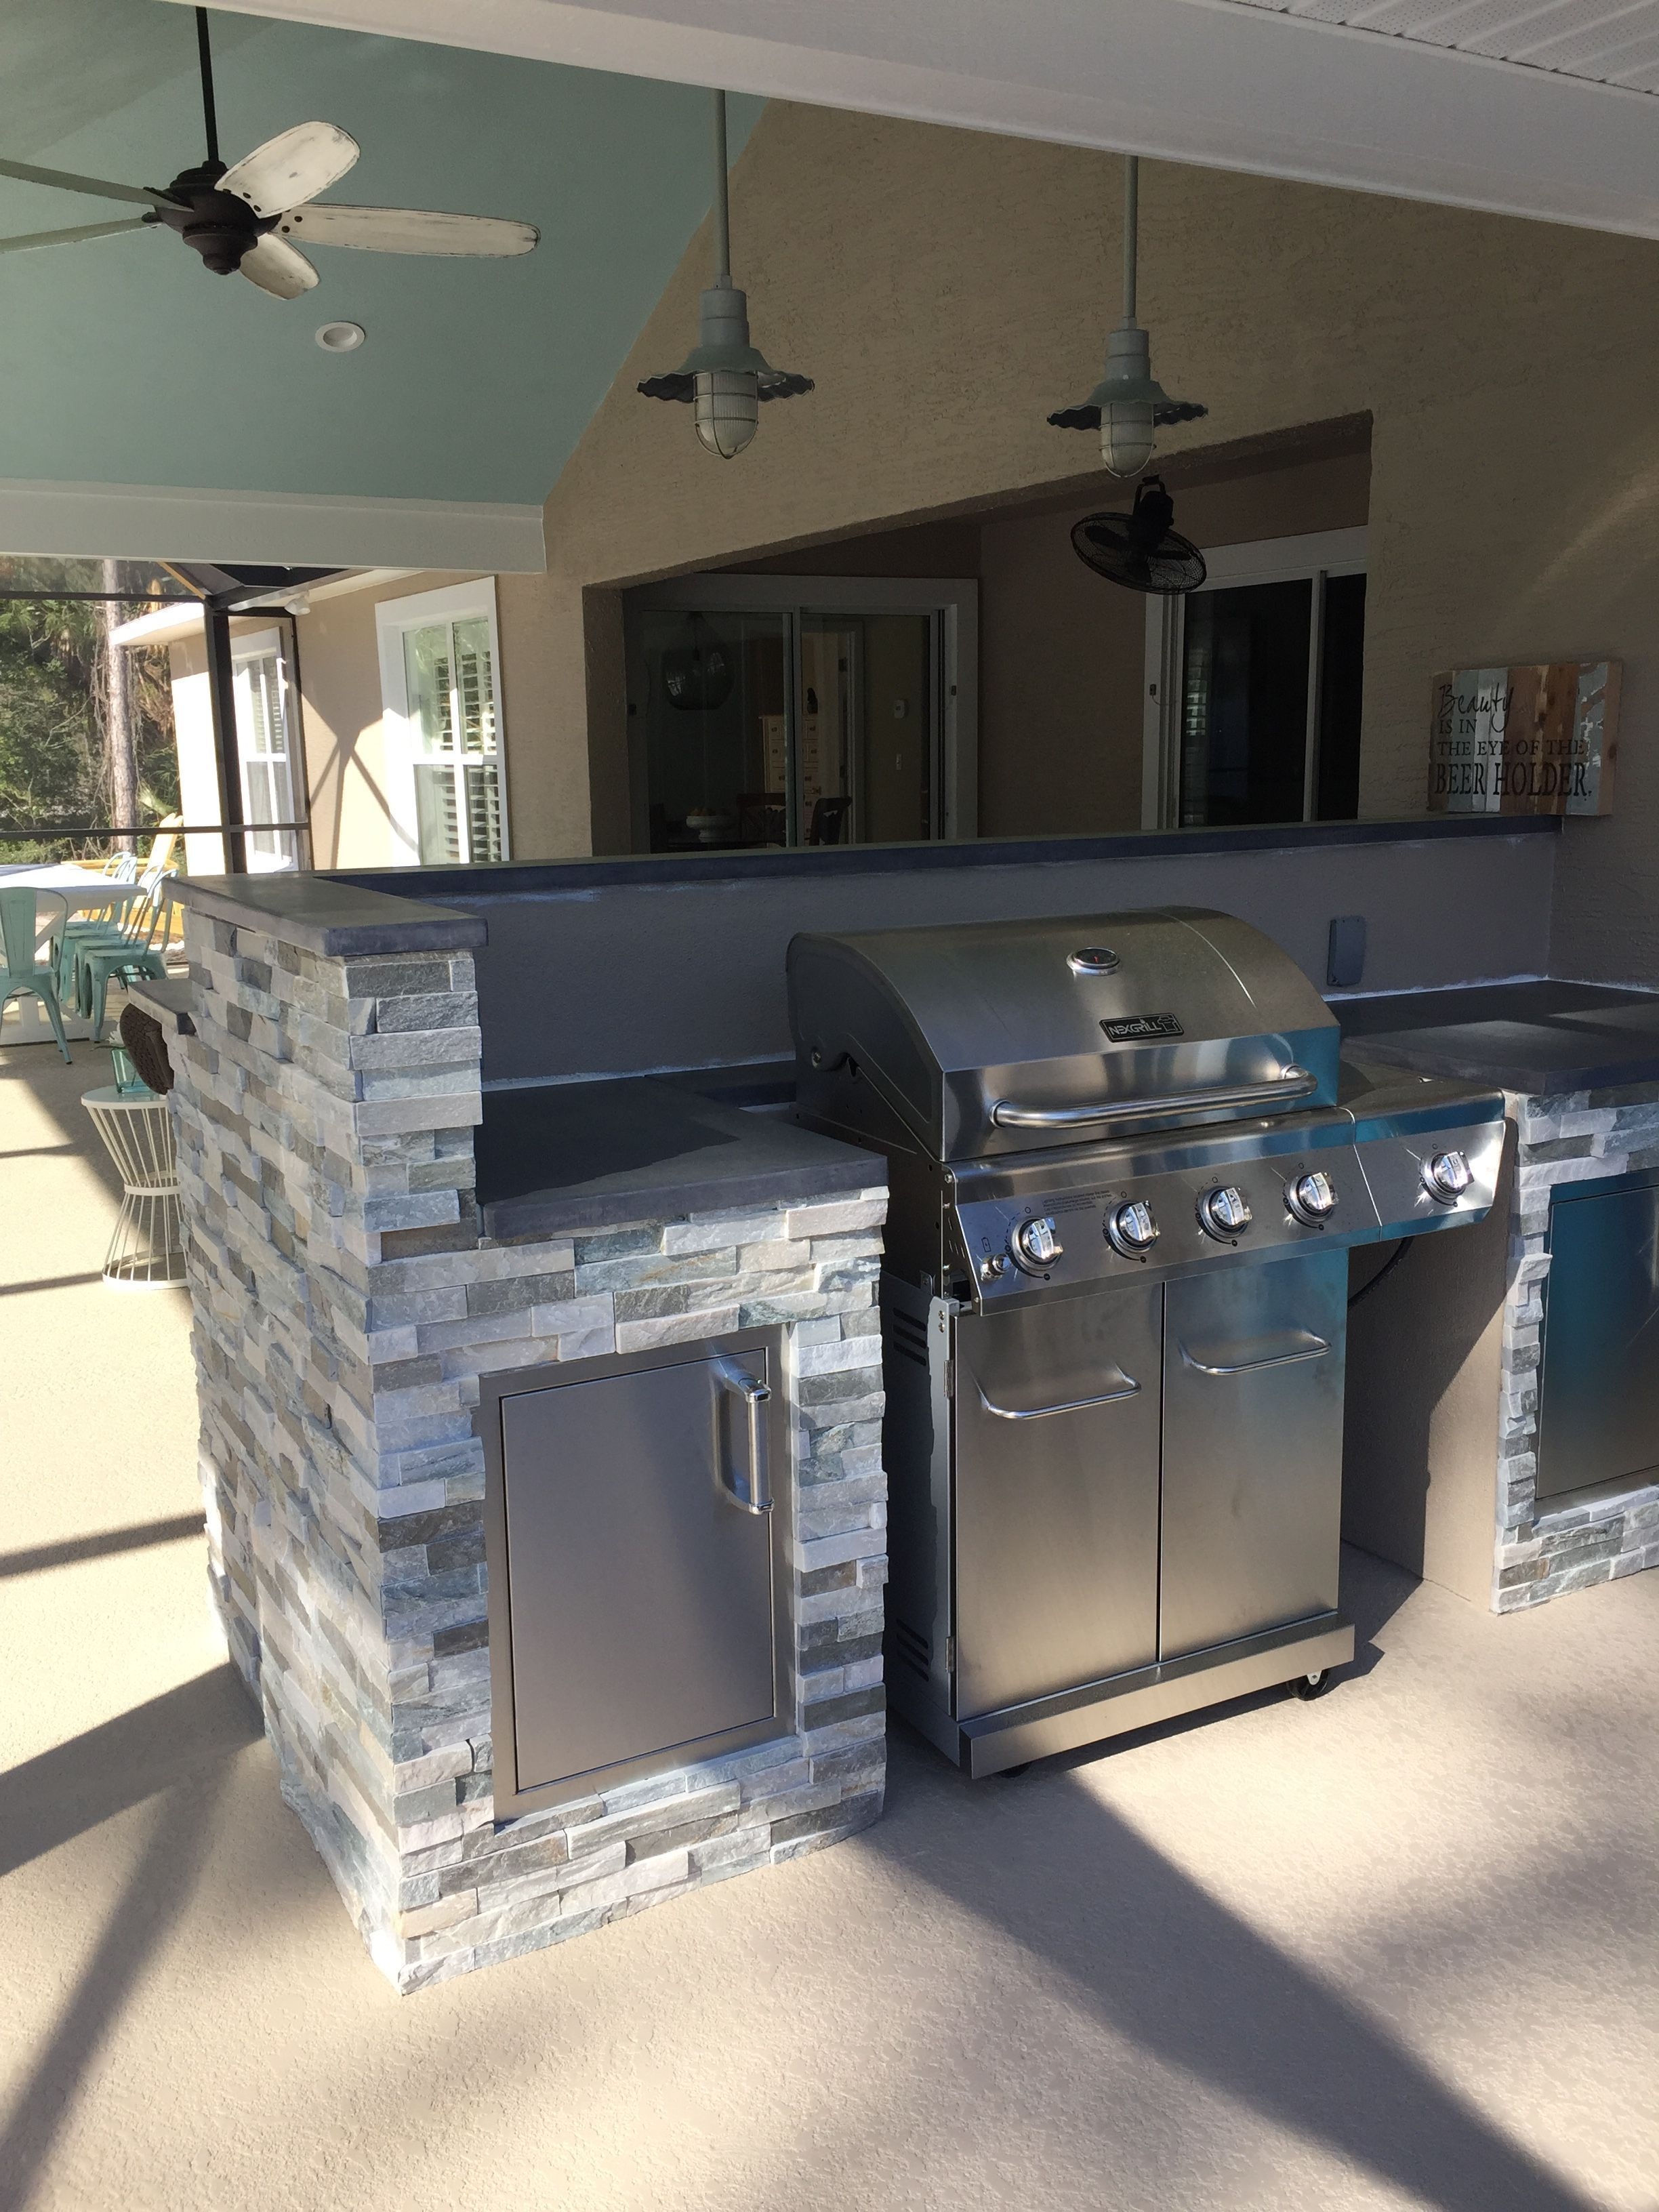 10 Outdoor Kitchen Ideas And Design On A Budget To Experience A Fun Cooking Outdoor Kitchen Design Layout Outdoor Kitchen Design Outdoor Kitchen Countertops